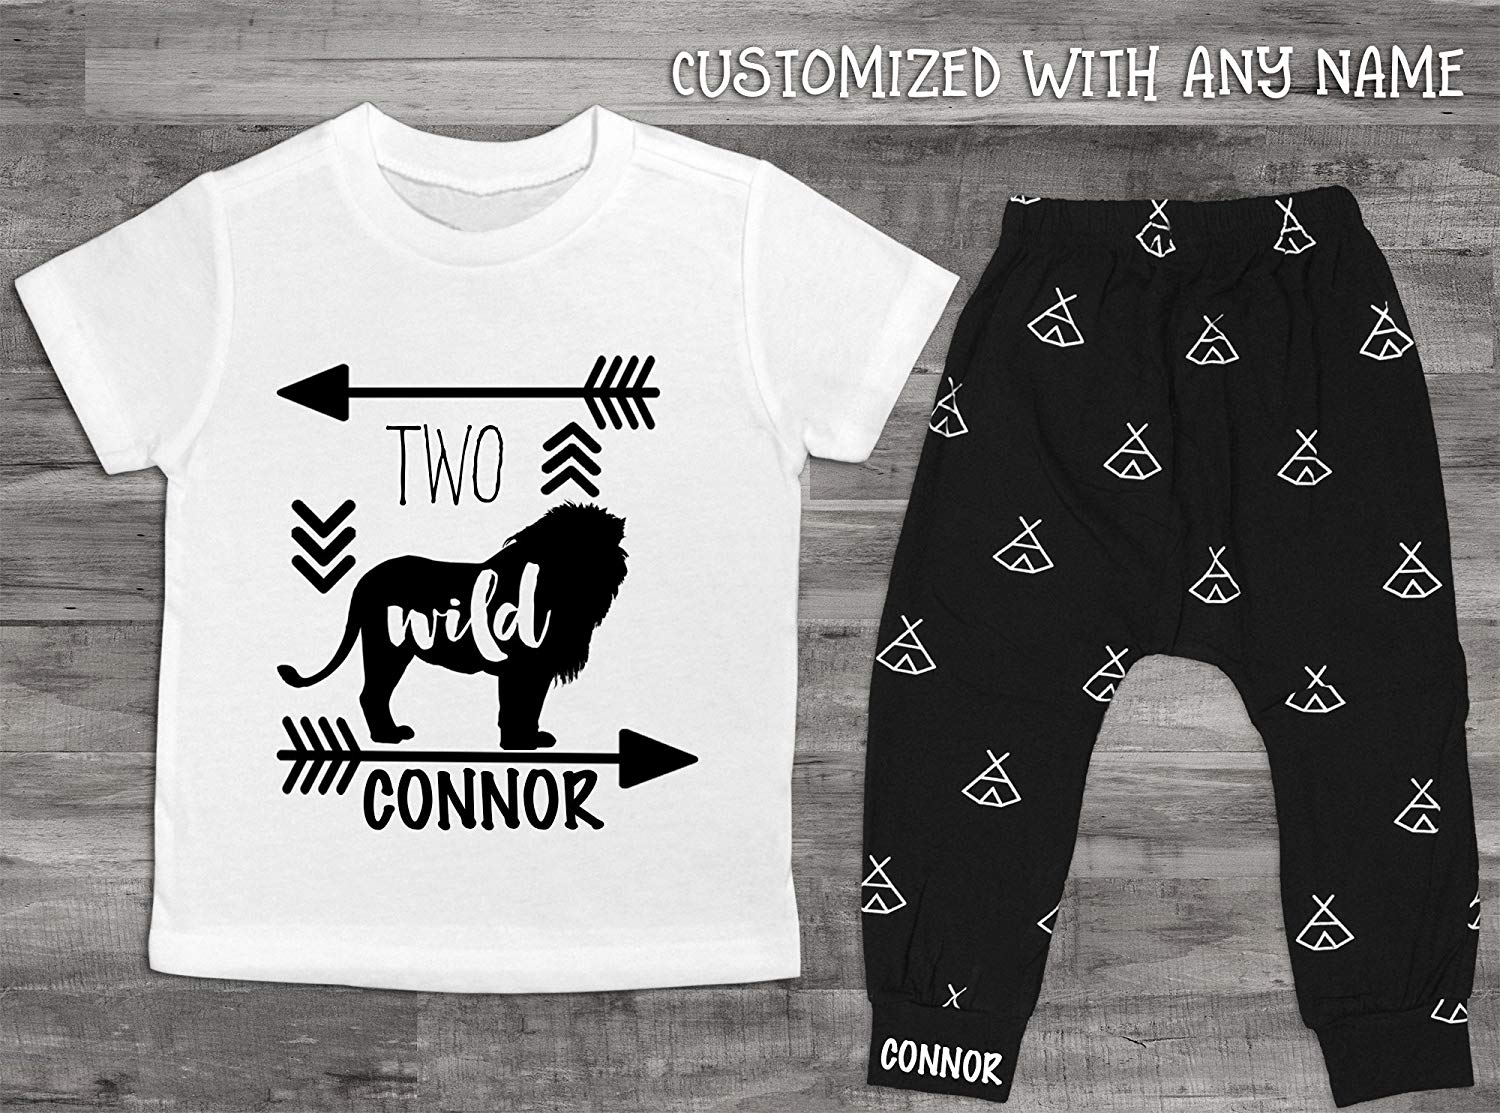 d2dca4f6f Get Quotations · Two Shirt Boy's 2nd Birthday Shirt Two Wild Shirt 2nd  Birthday Shirt Boy 2nd Birthday Second